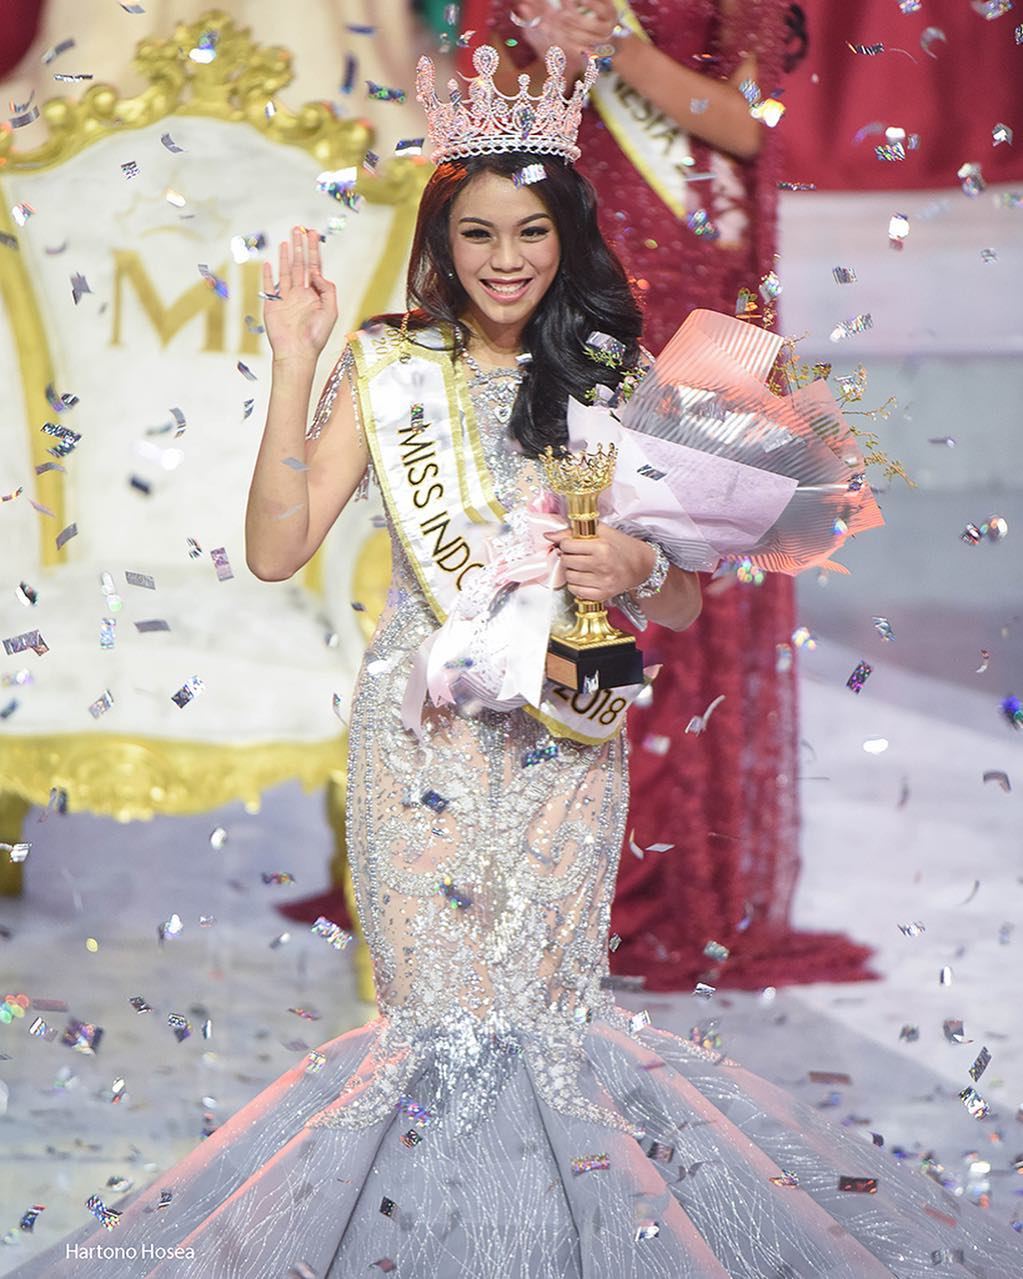 ★★★ ROAD TO MISS WORLD 2018 ★★★  - Page 2 27893537_435545680234078_3570567529057222656_n